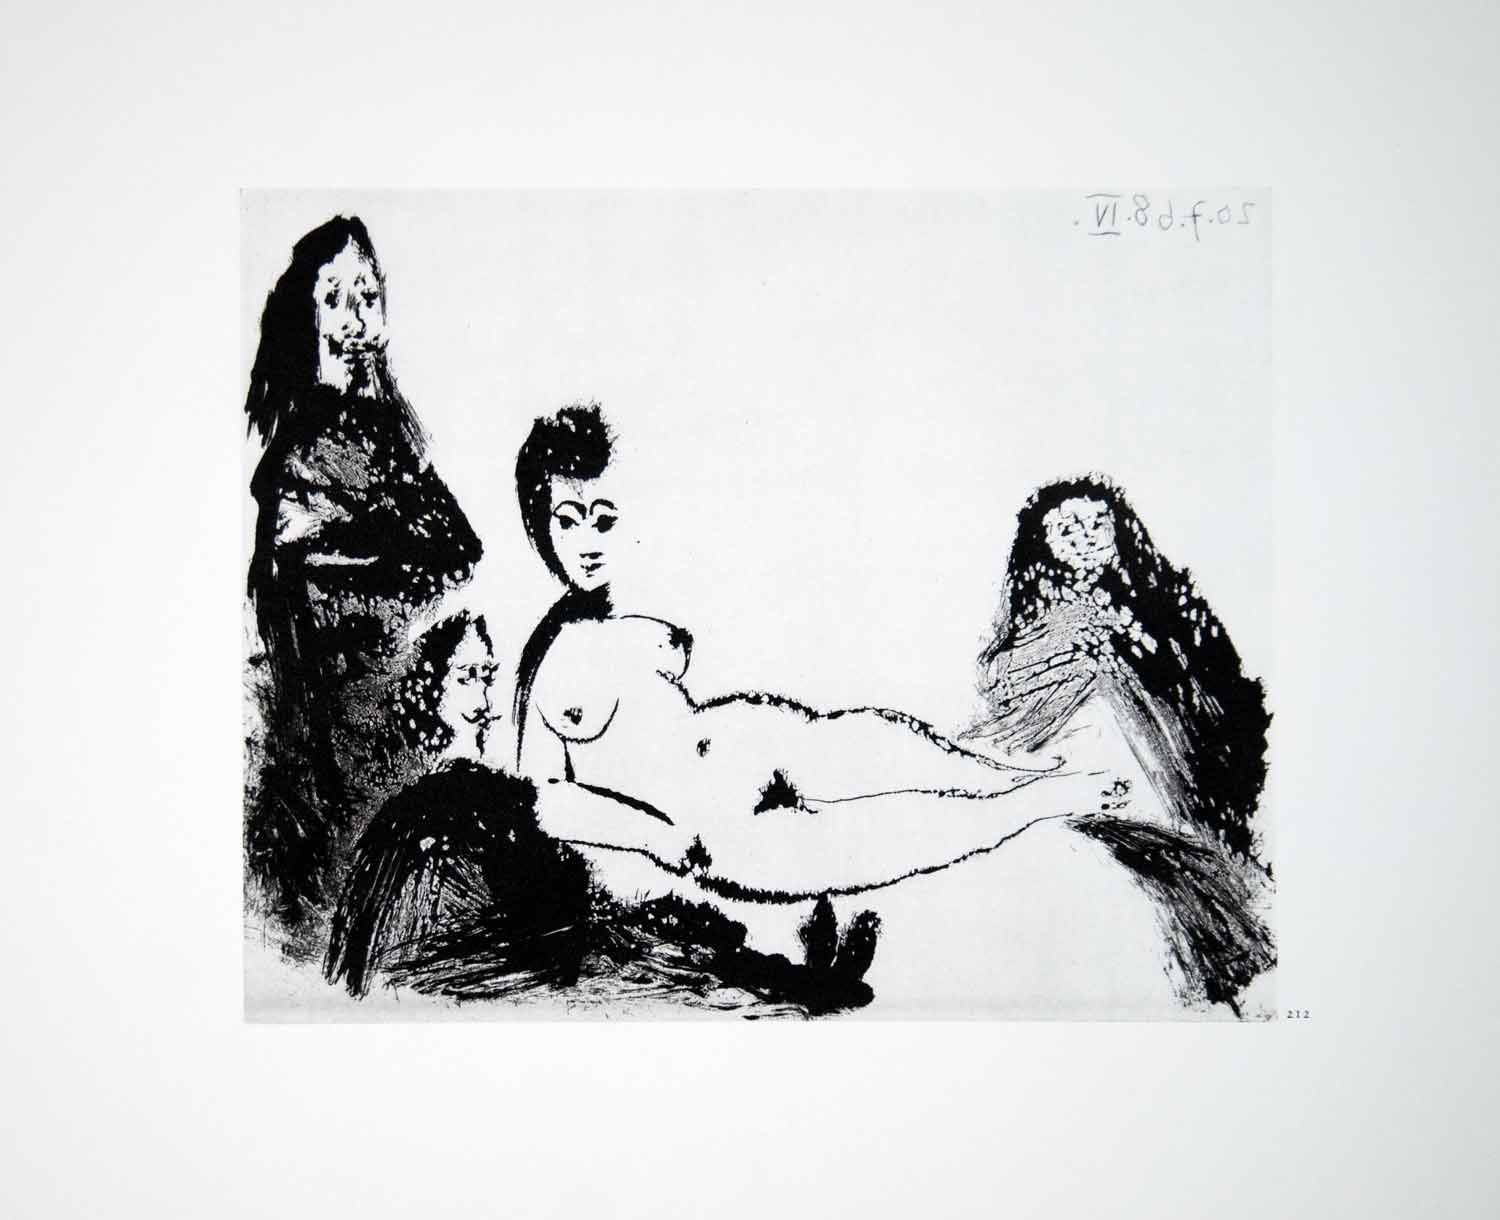 1970 Heliogravure Picasso Reclining Nude Female Figure Body Aquatint Art P347B